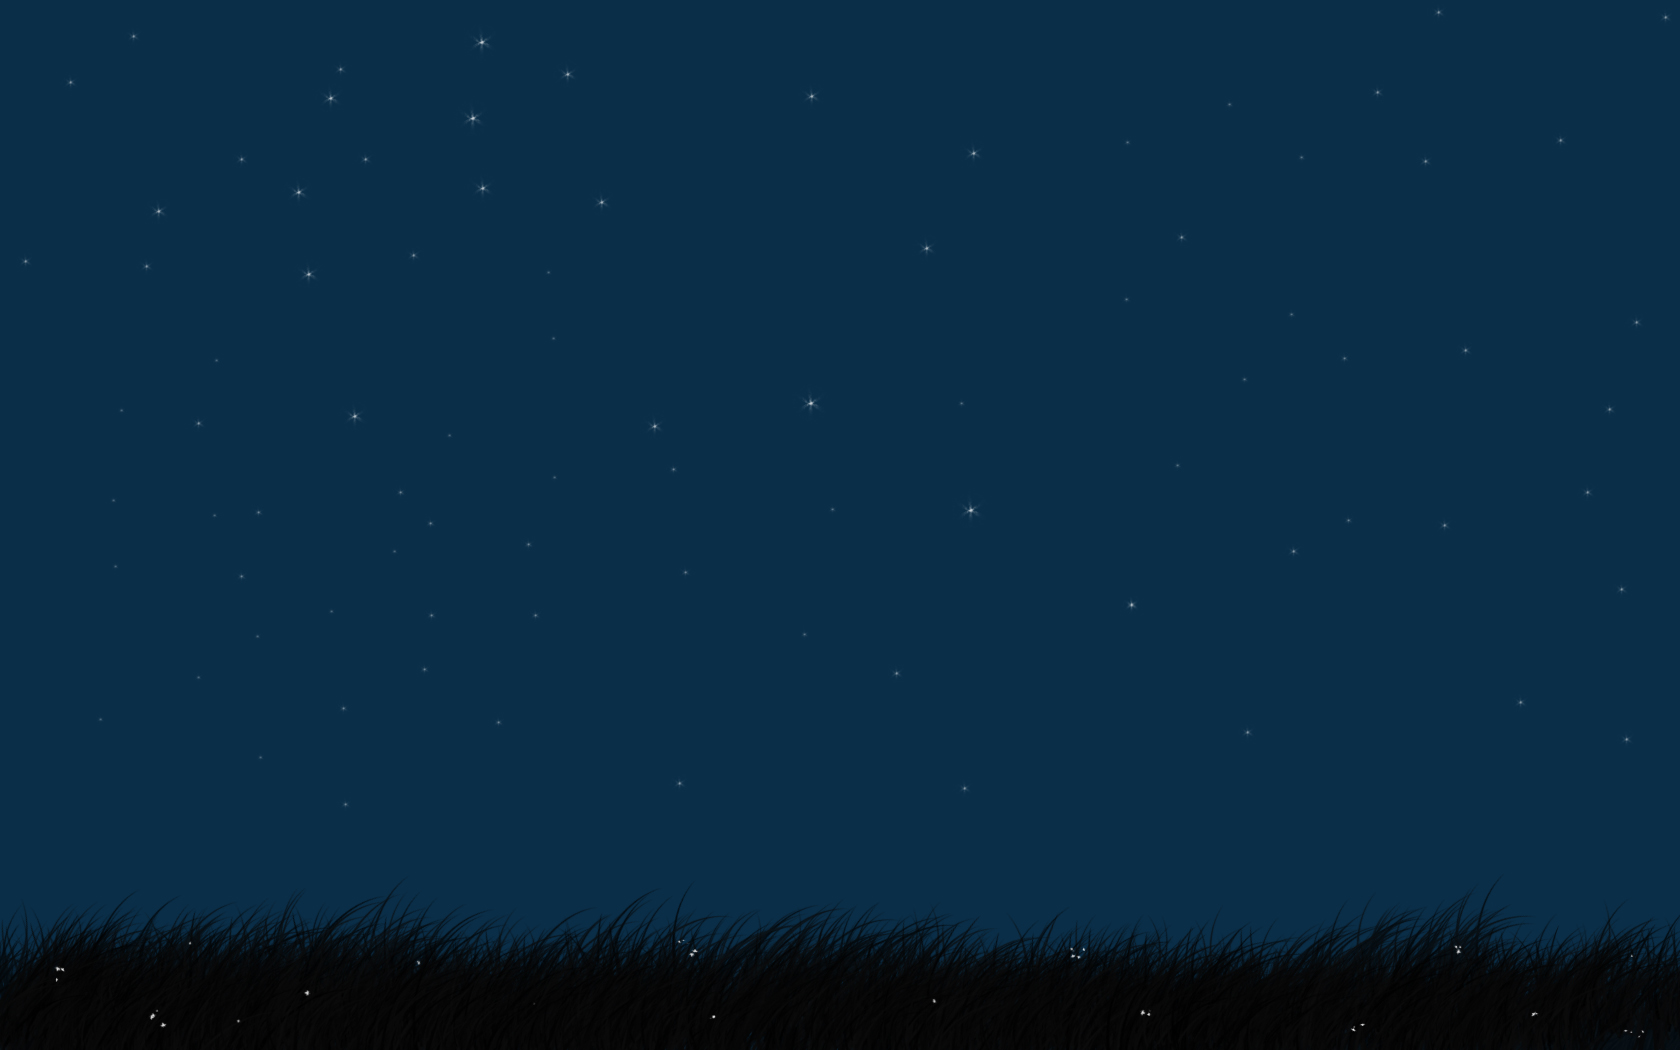 Grass and the night sky wallpaper 1680x1050